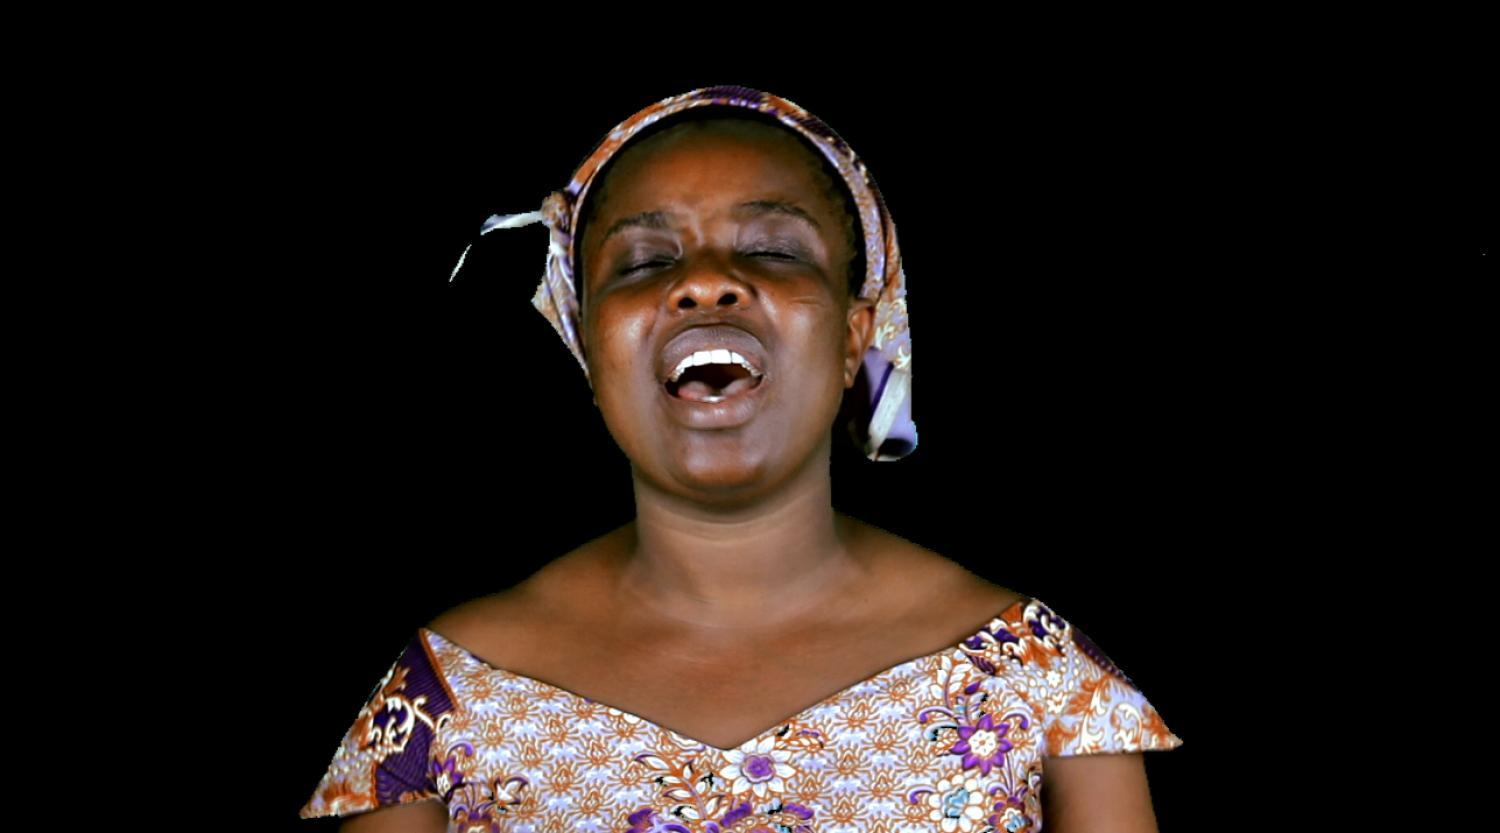 Zina Saro-Wiwa. Prayer Warrior, 2015. (video still)